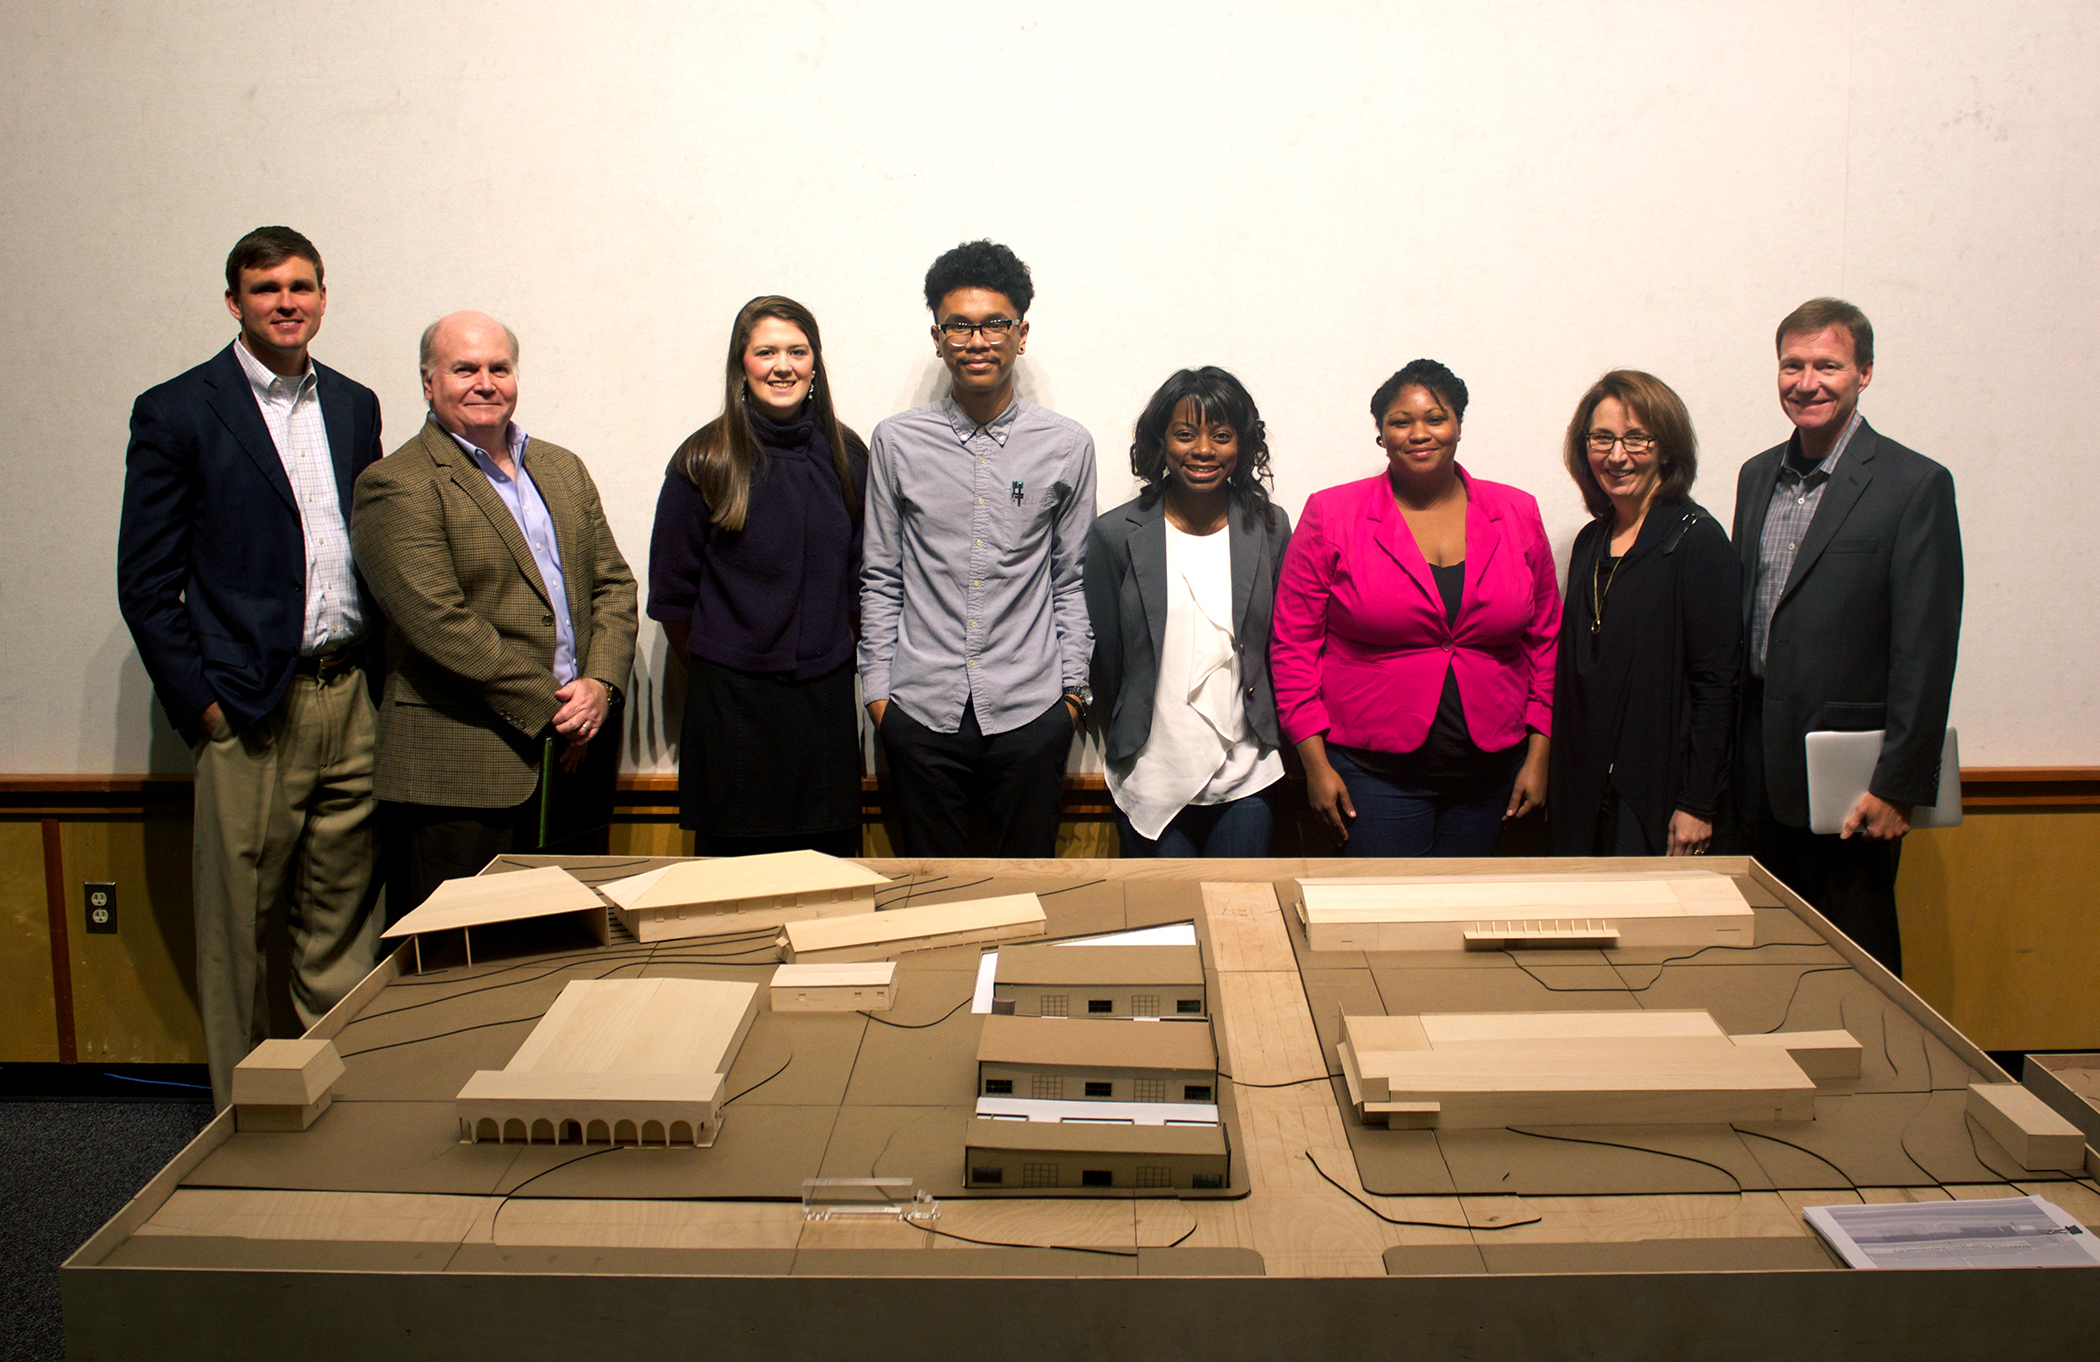 A studio class of fourth-year architectures majors at MSU recently developed ideas for a recycle-reuse process known as functional symbiosis. Among winners were (third from left to right) Megan Vansant, Kevin Flores, Aryn Phillips and Nenyatta Smith. Also pictured are (far left) project juror Patrick Sullivan and former MSU architecture major Keith Findley. With them are (at far right) juror Daria Pizzetta of H3 Hardy Collaboration and architect Jim Findley, an MSU alumnus.